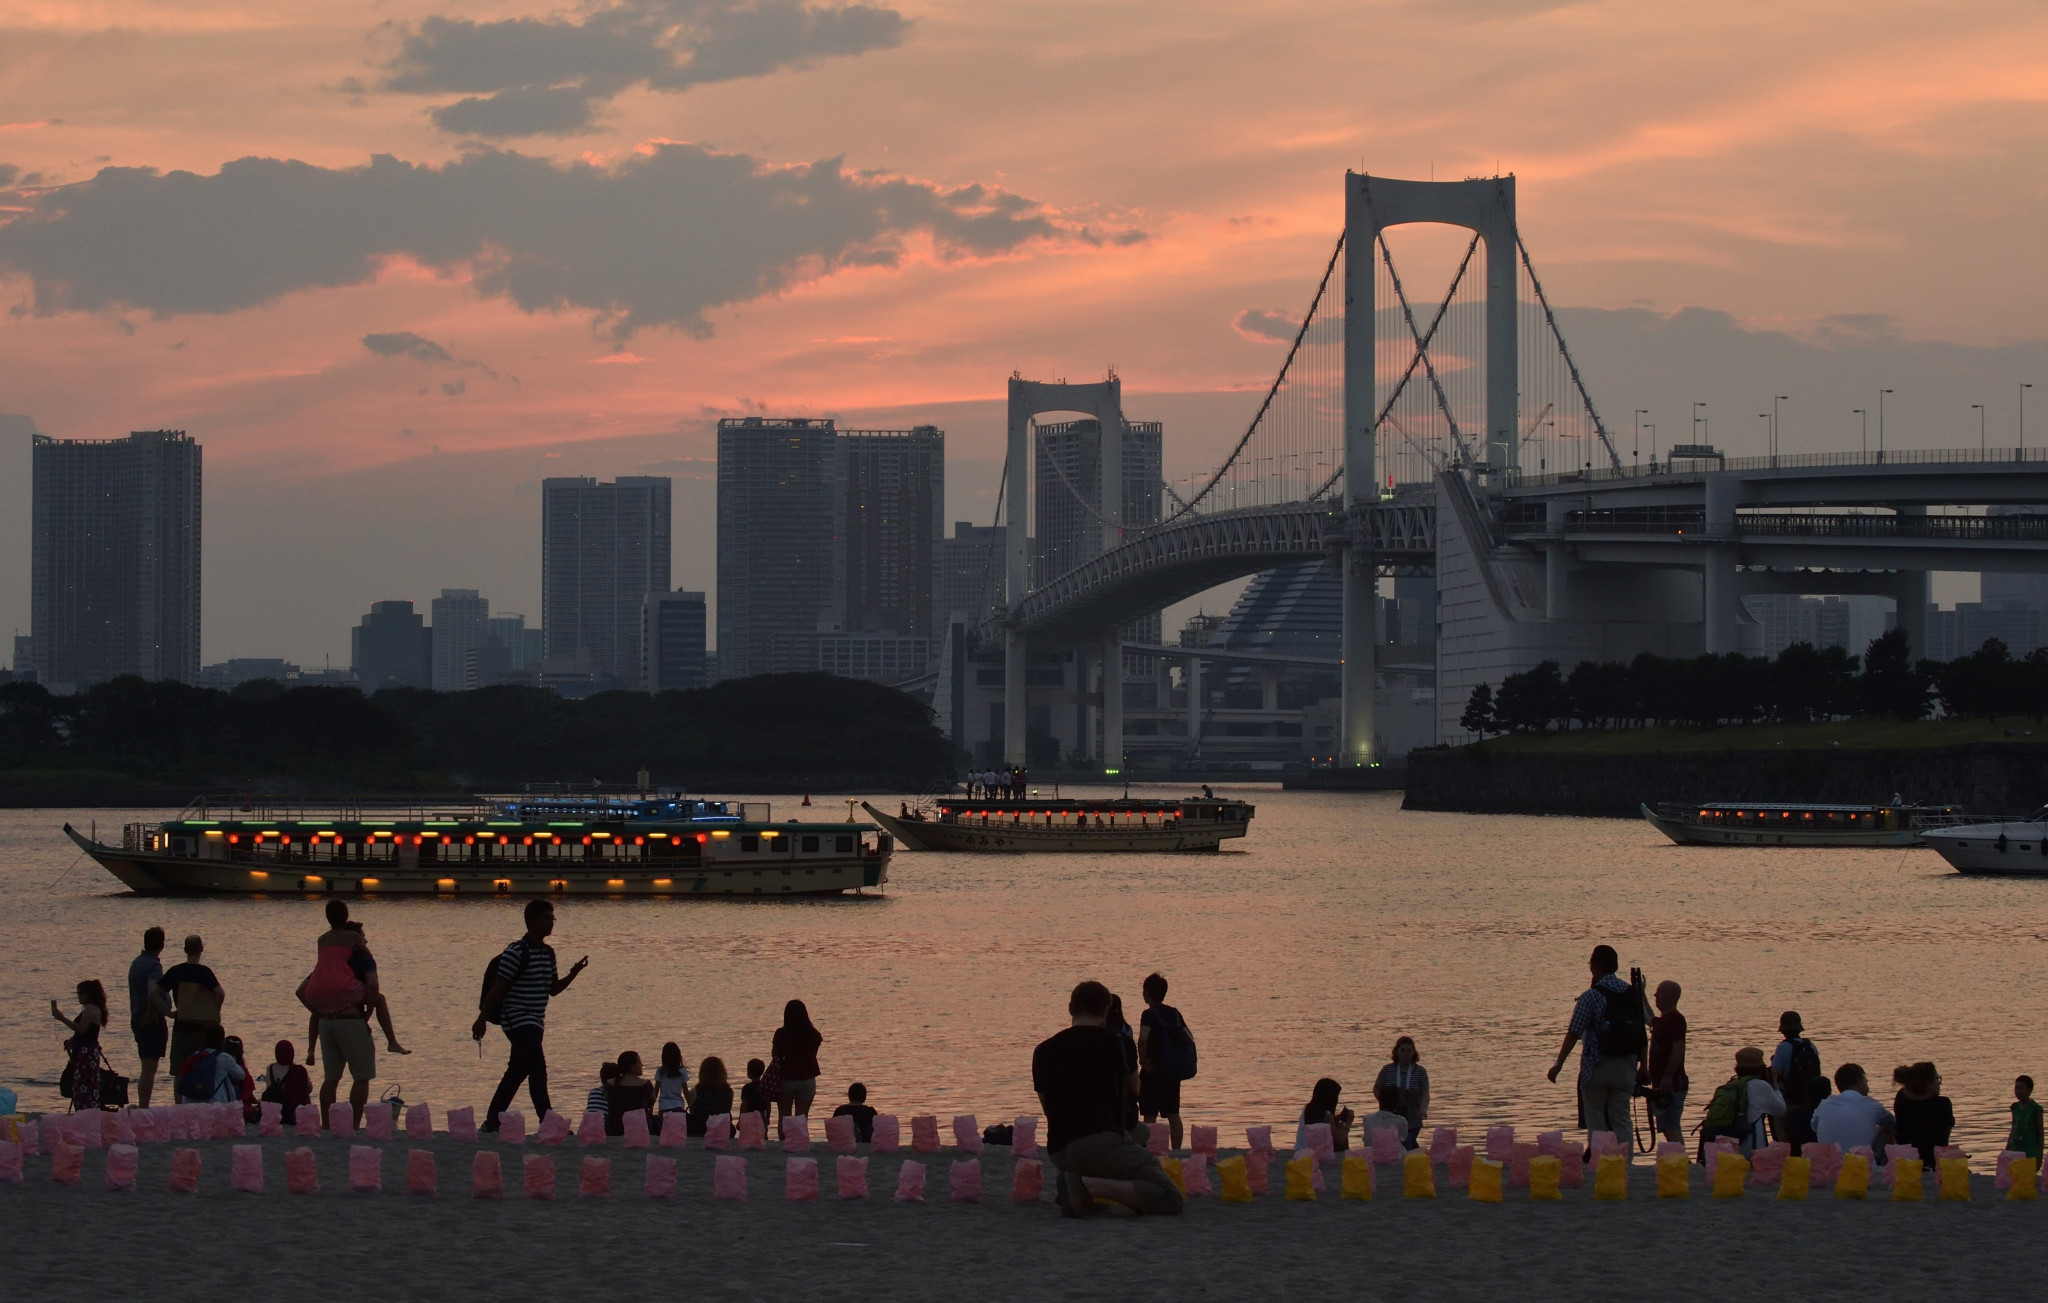 Water pollution concerns in the Odaiba area have grown after a Tokyo 2020 survey revealed the quality was not good enough to meet IF standards ©Getty Images